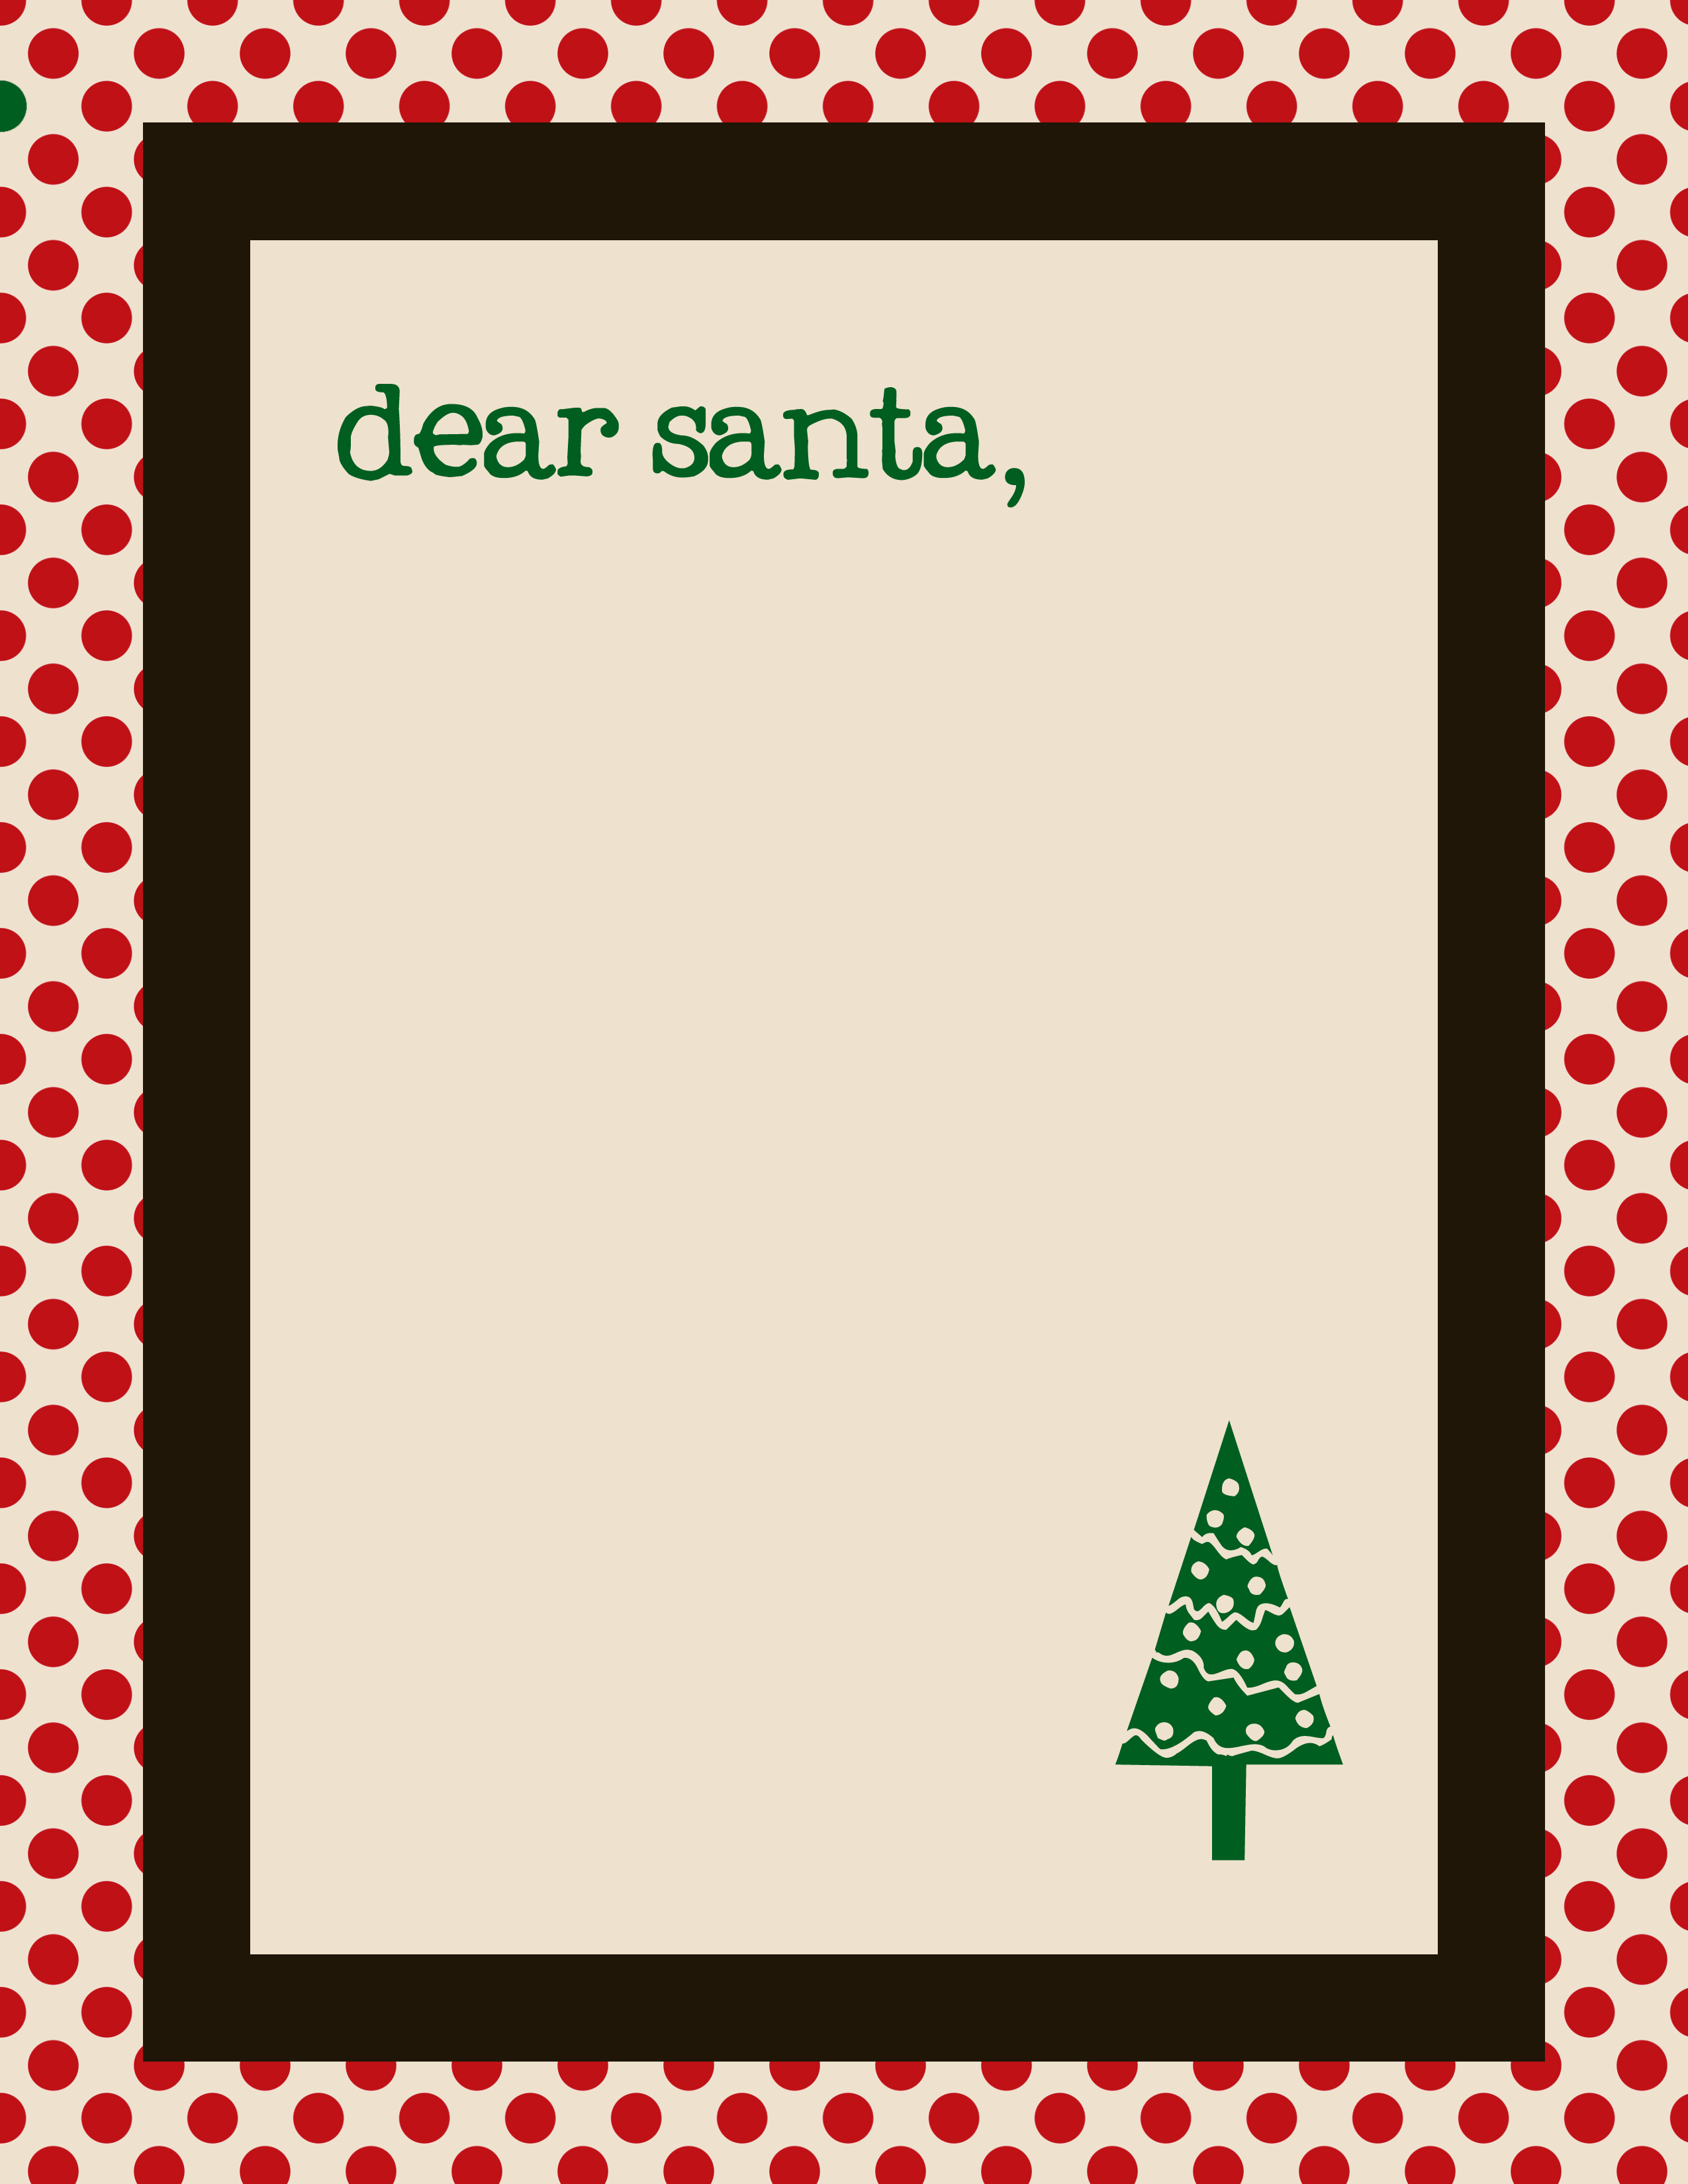 Where To Send Santa Letters For Free